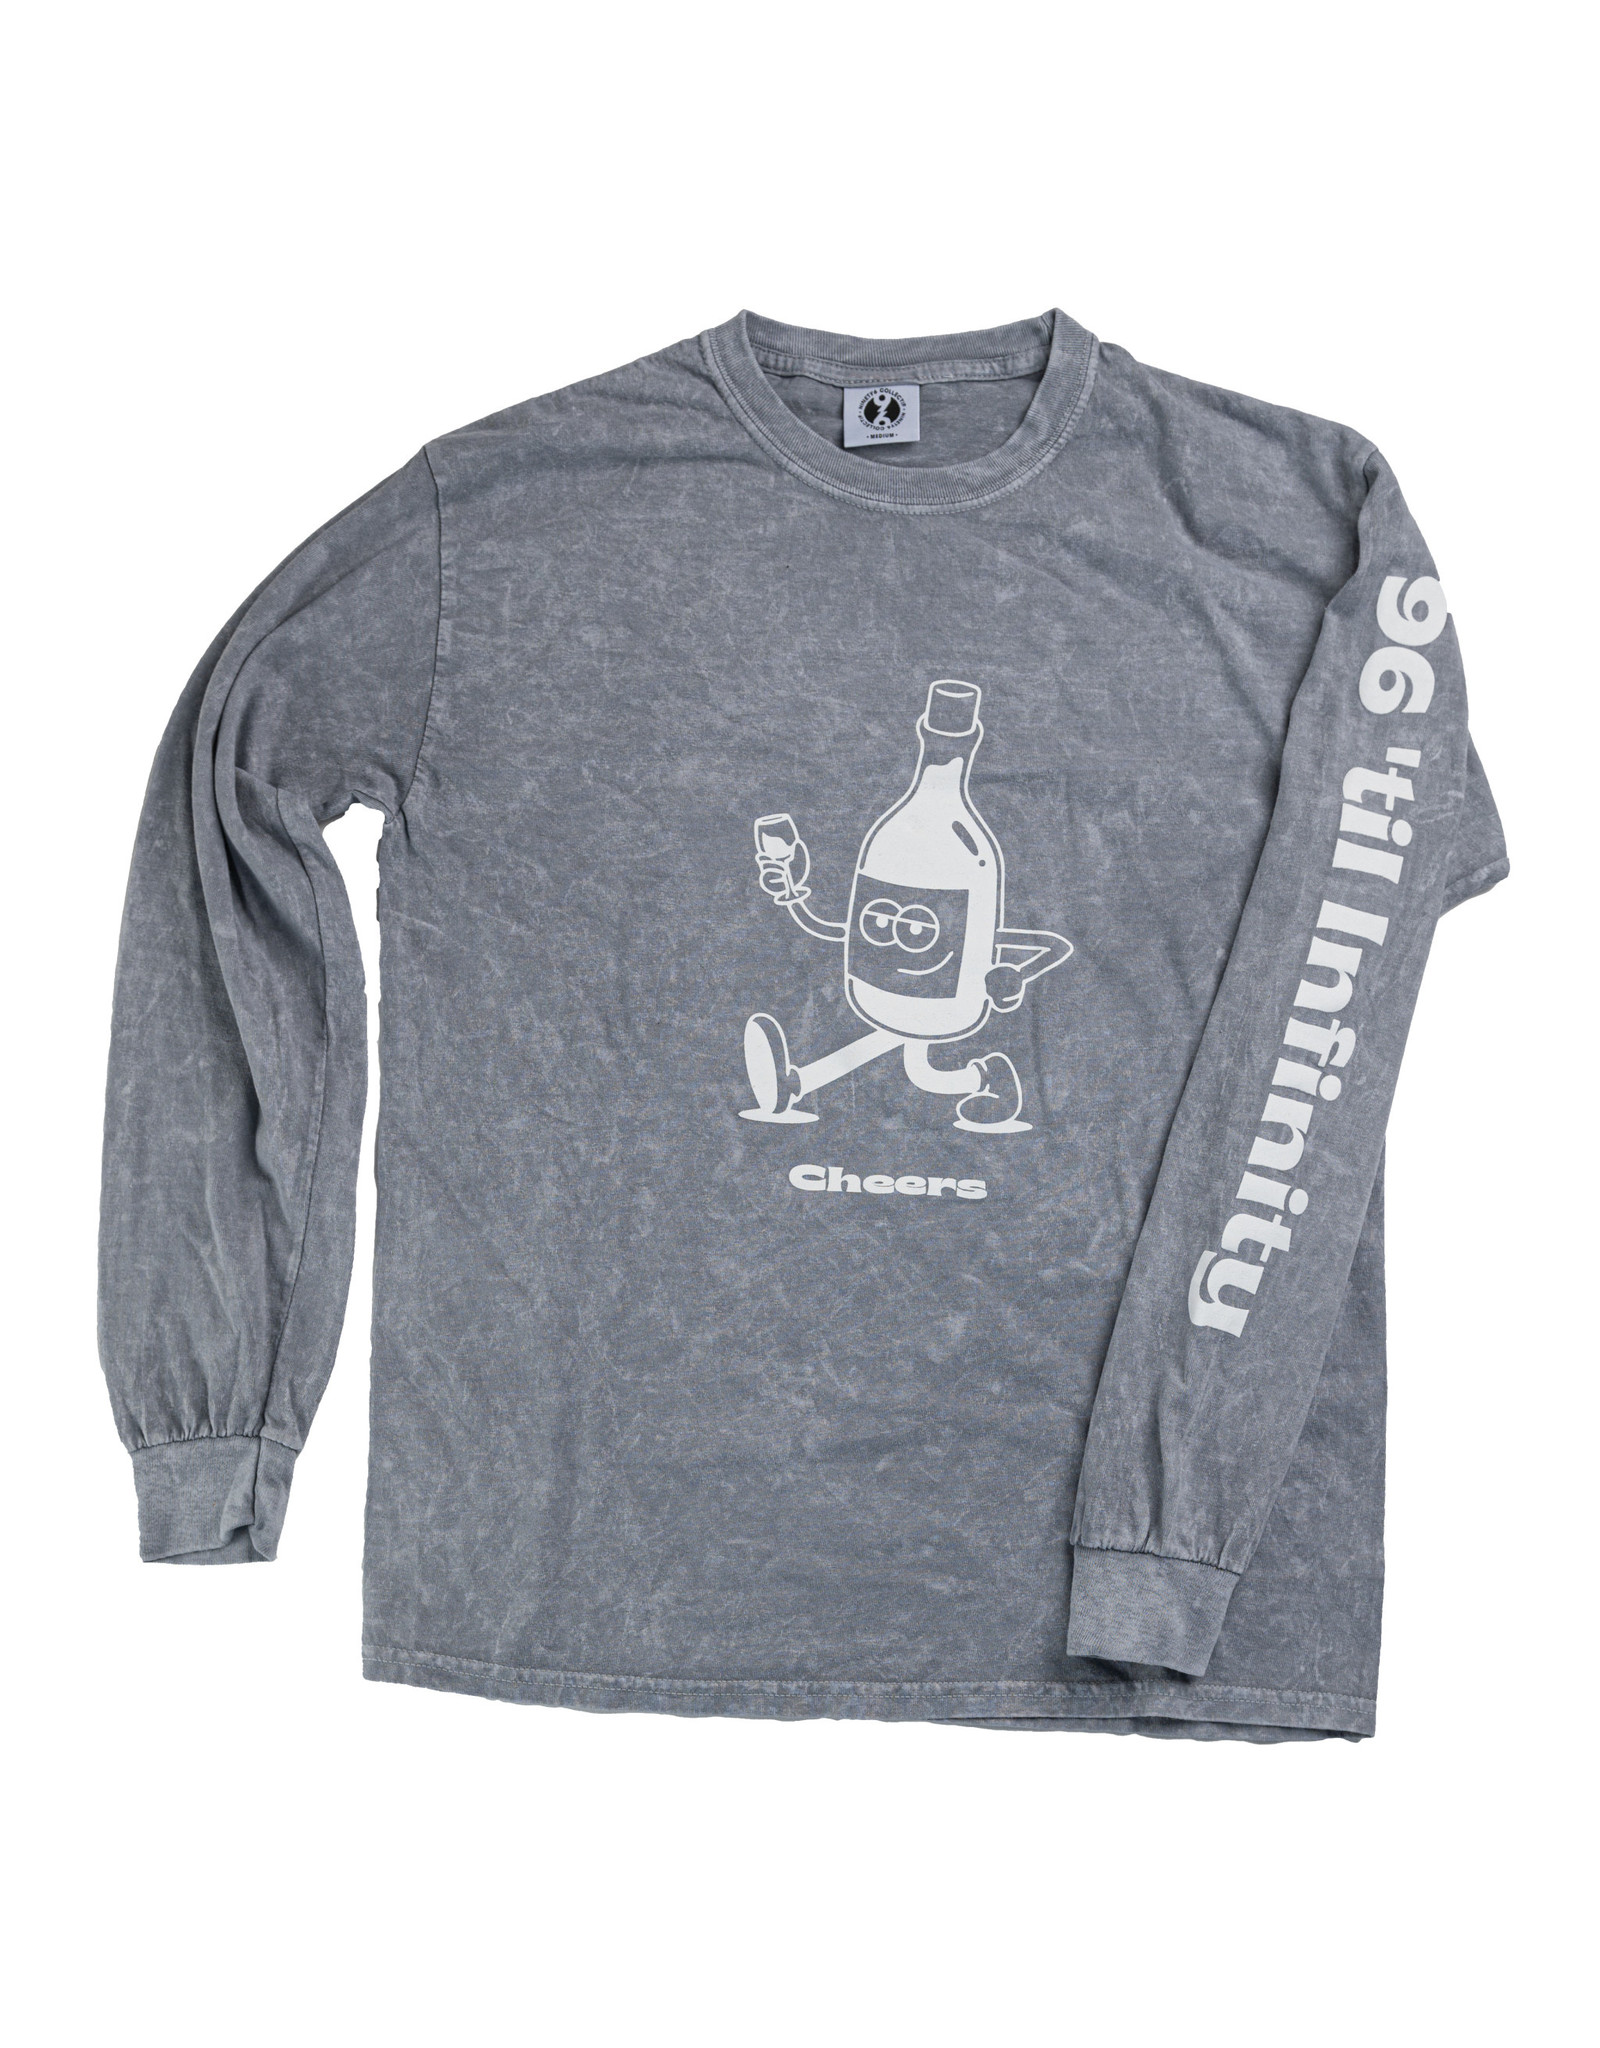 96 COLLECTIF 96 Collectif - Chandail long homme cheers die